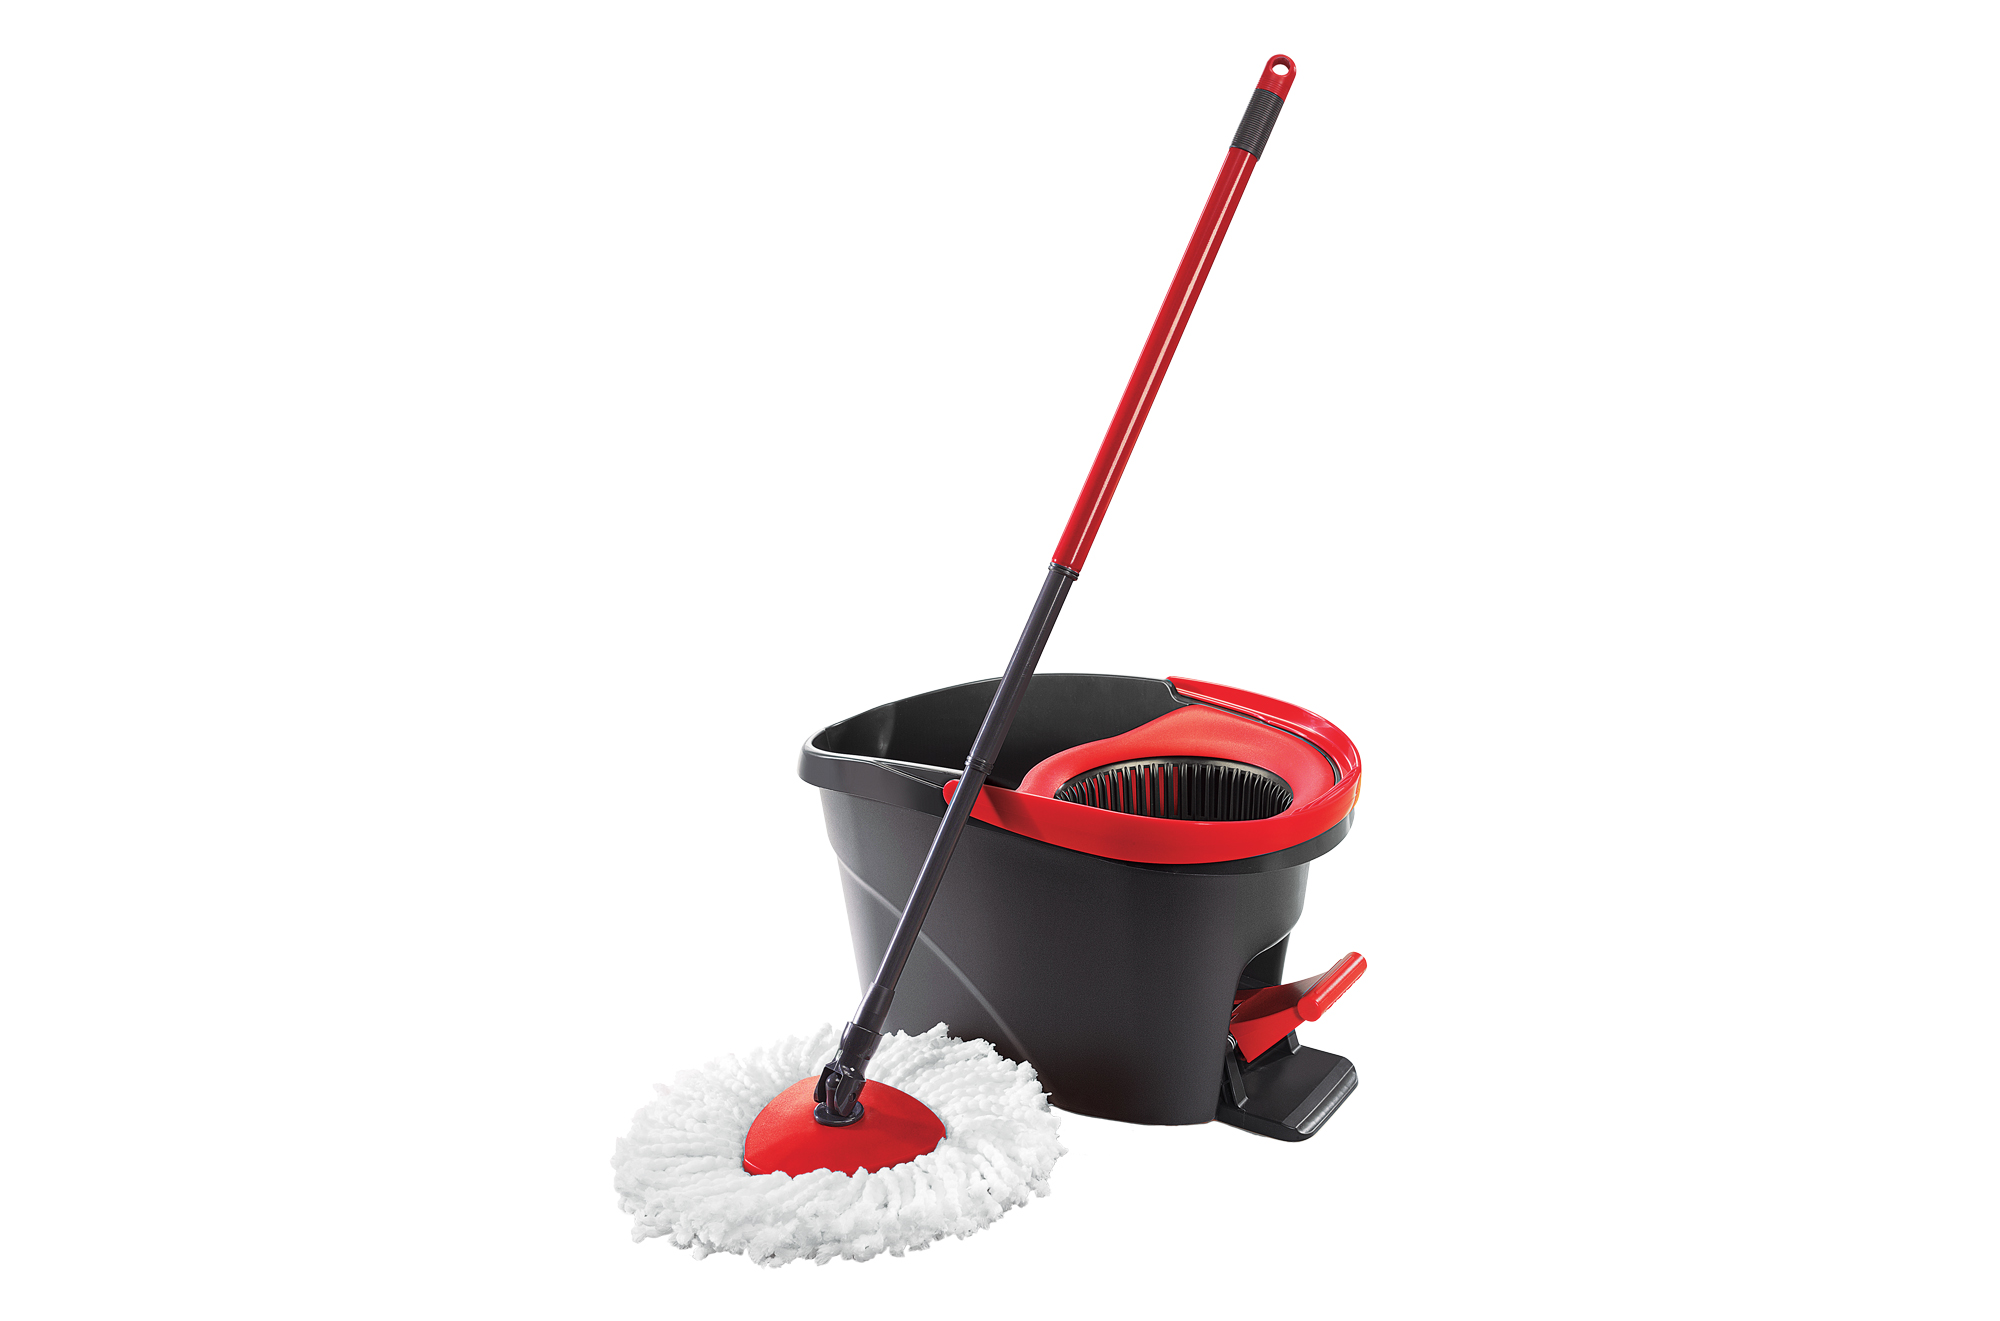 O-Cedar Easywring Spin Mop And Bucket System